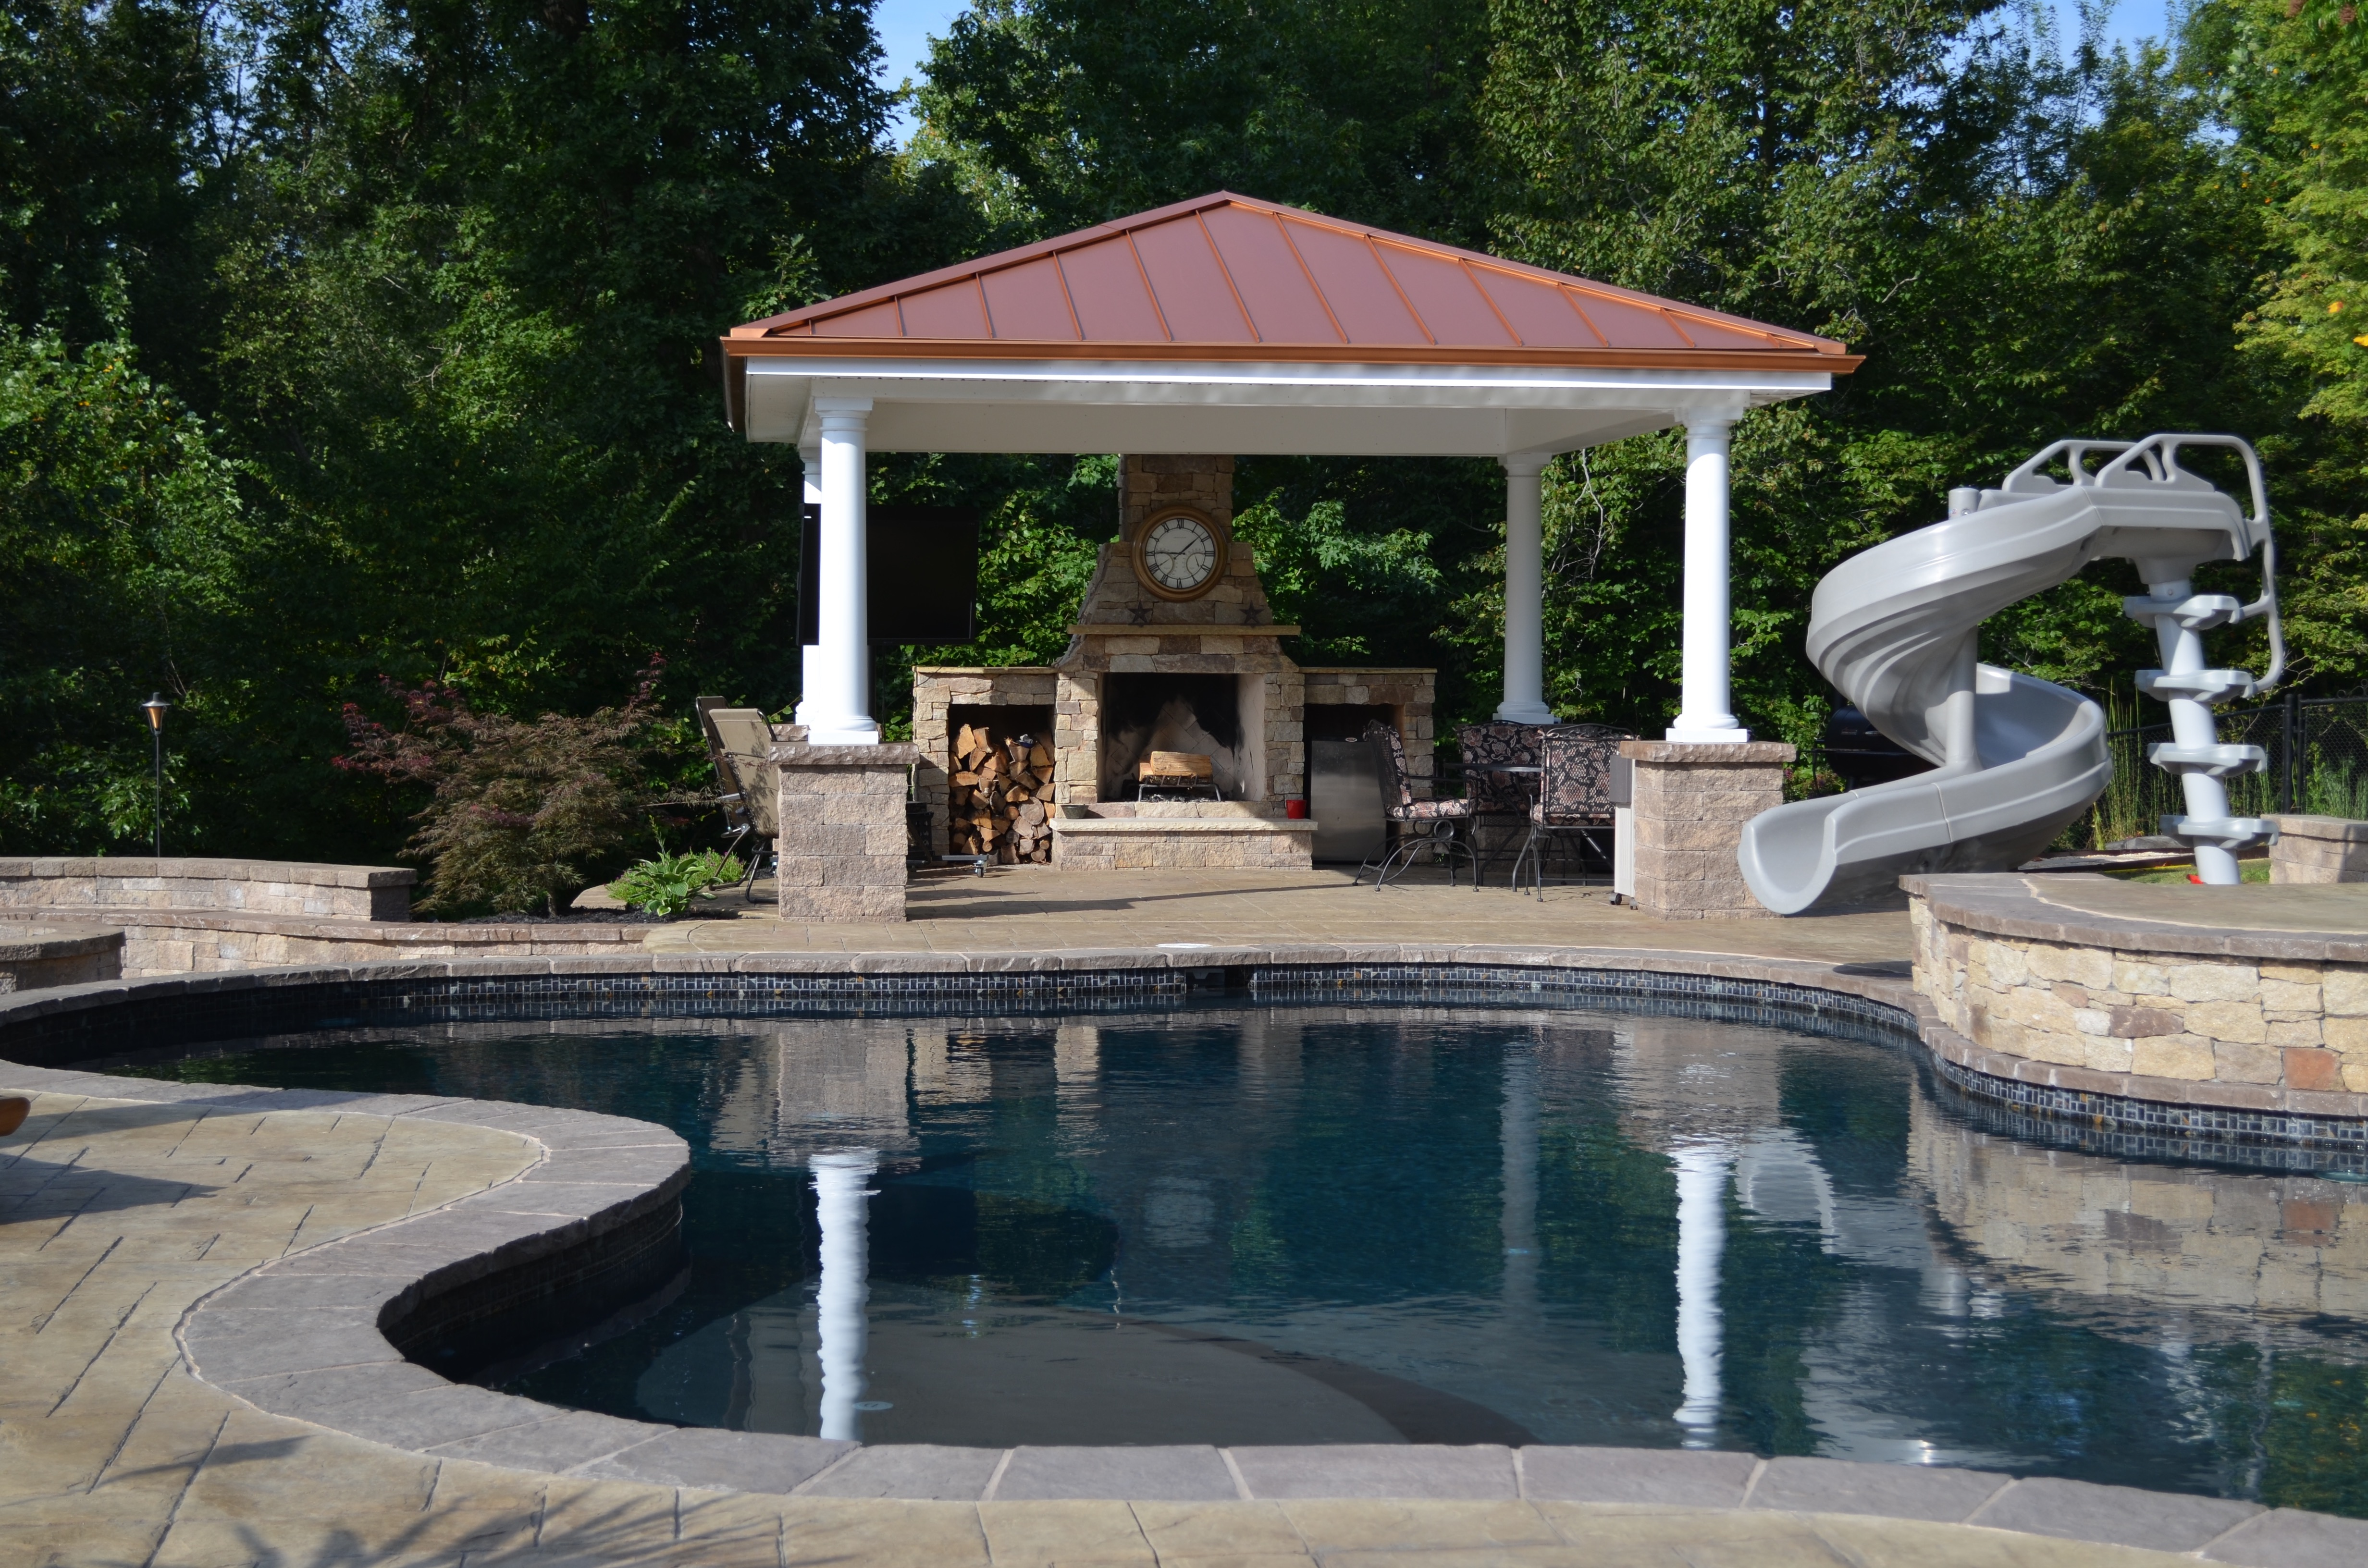 Swimming Pool Pavilion with fire pit